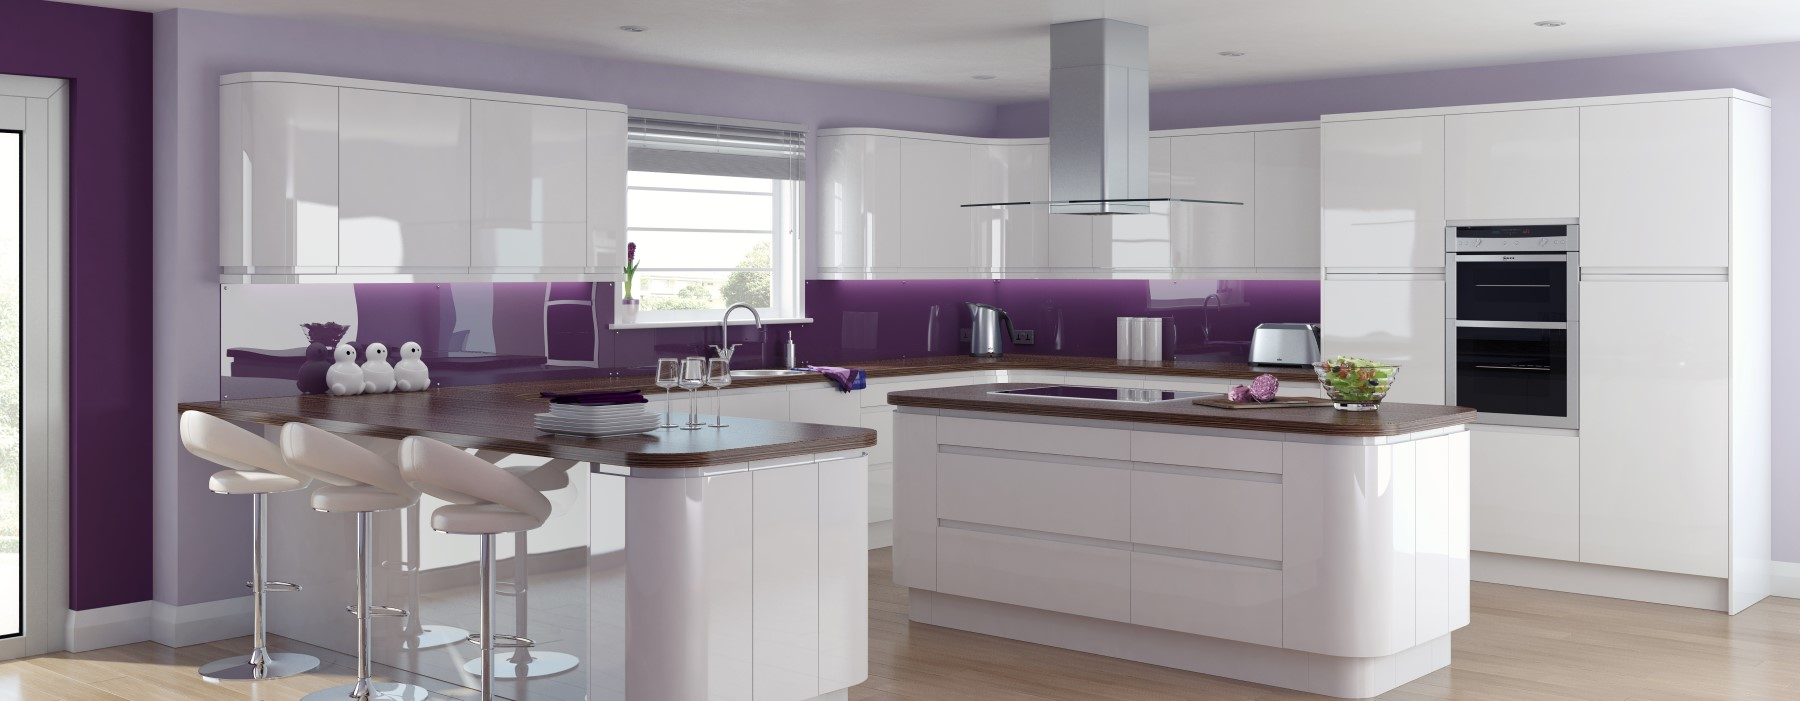 Fitted Kitchens Glasgow >> Clyde Kitchens Glasgow Quality Kitchen Supplier And Fitter